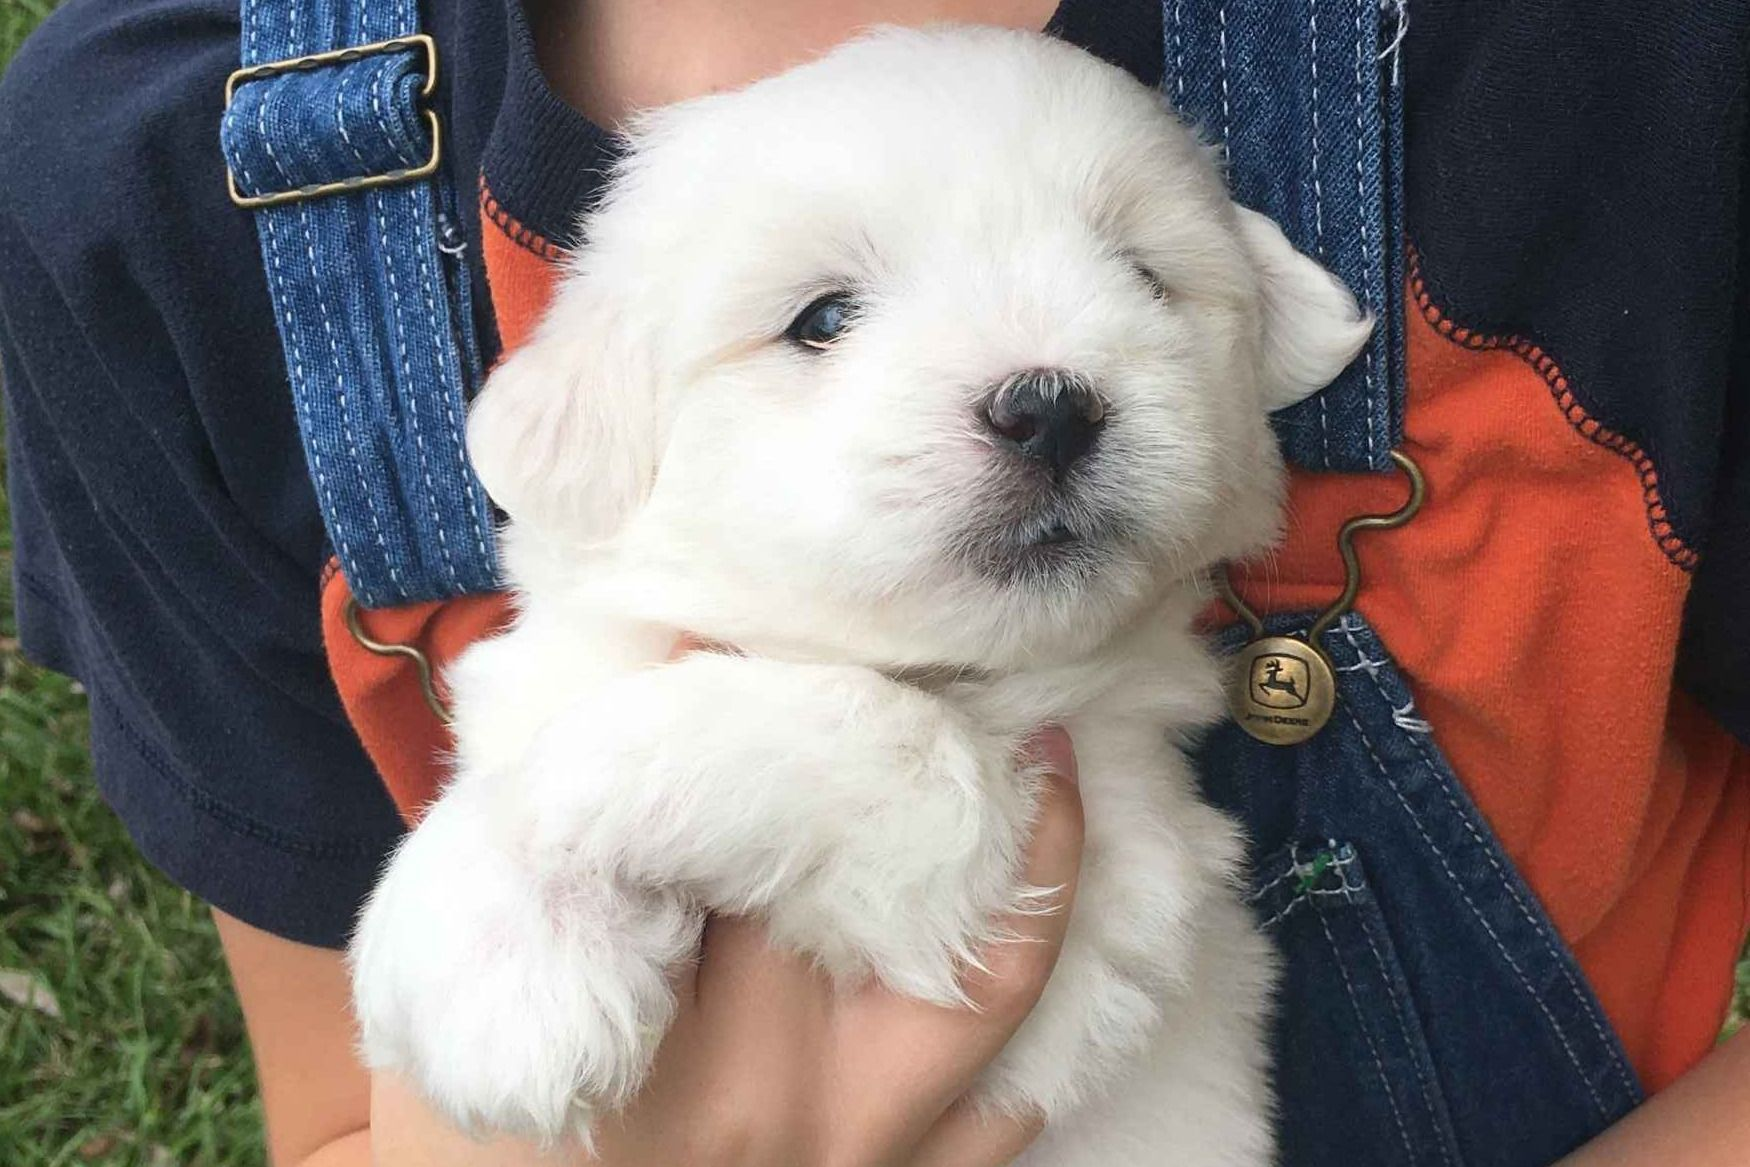 Bichon Frise Puppies For Sale Greenfield Puppies Bichon Frise Puppy Bichon Frise Dogs Bichon